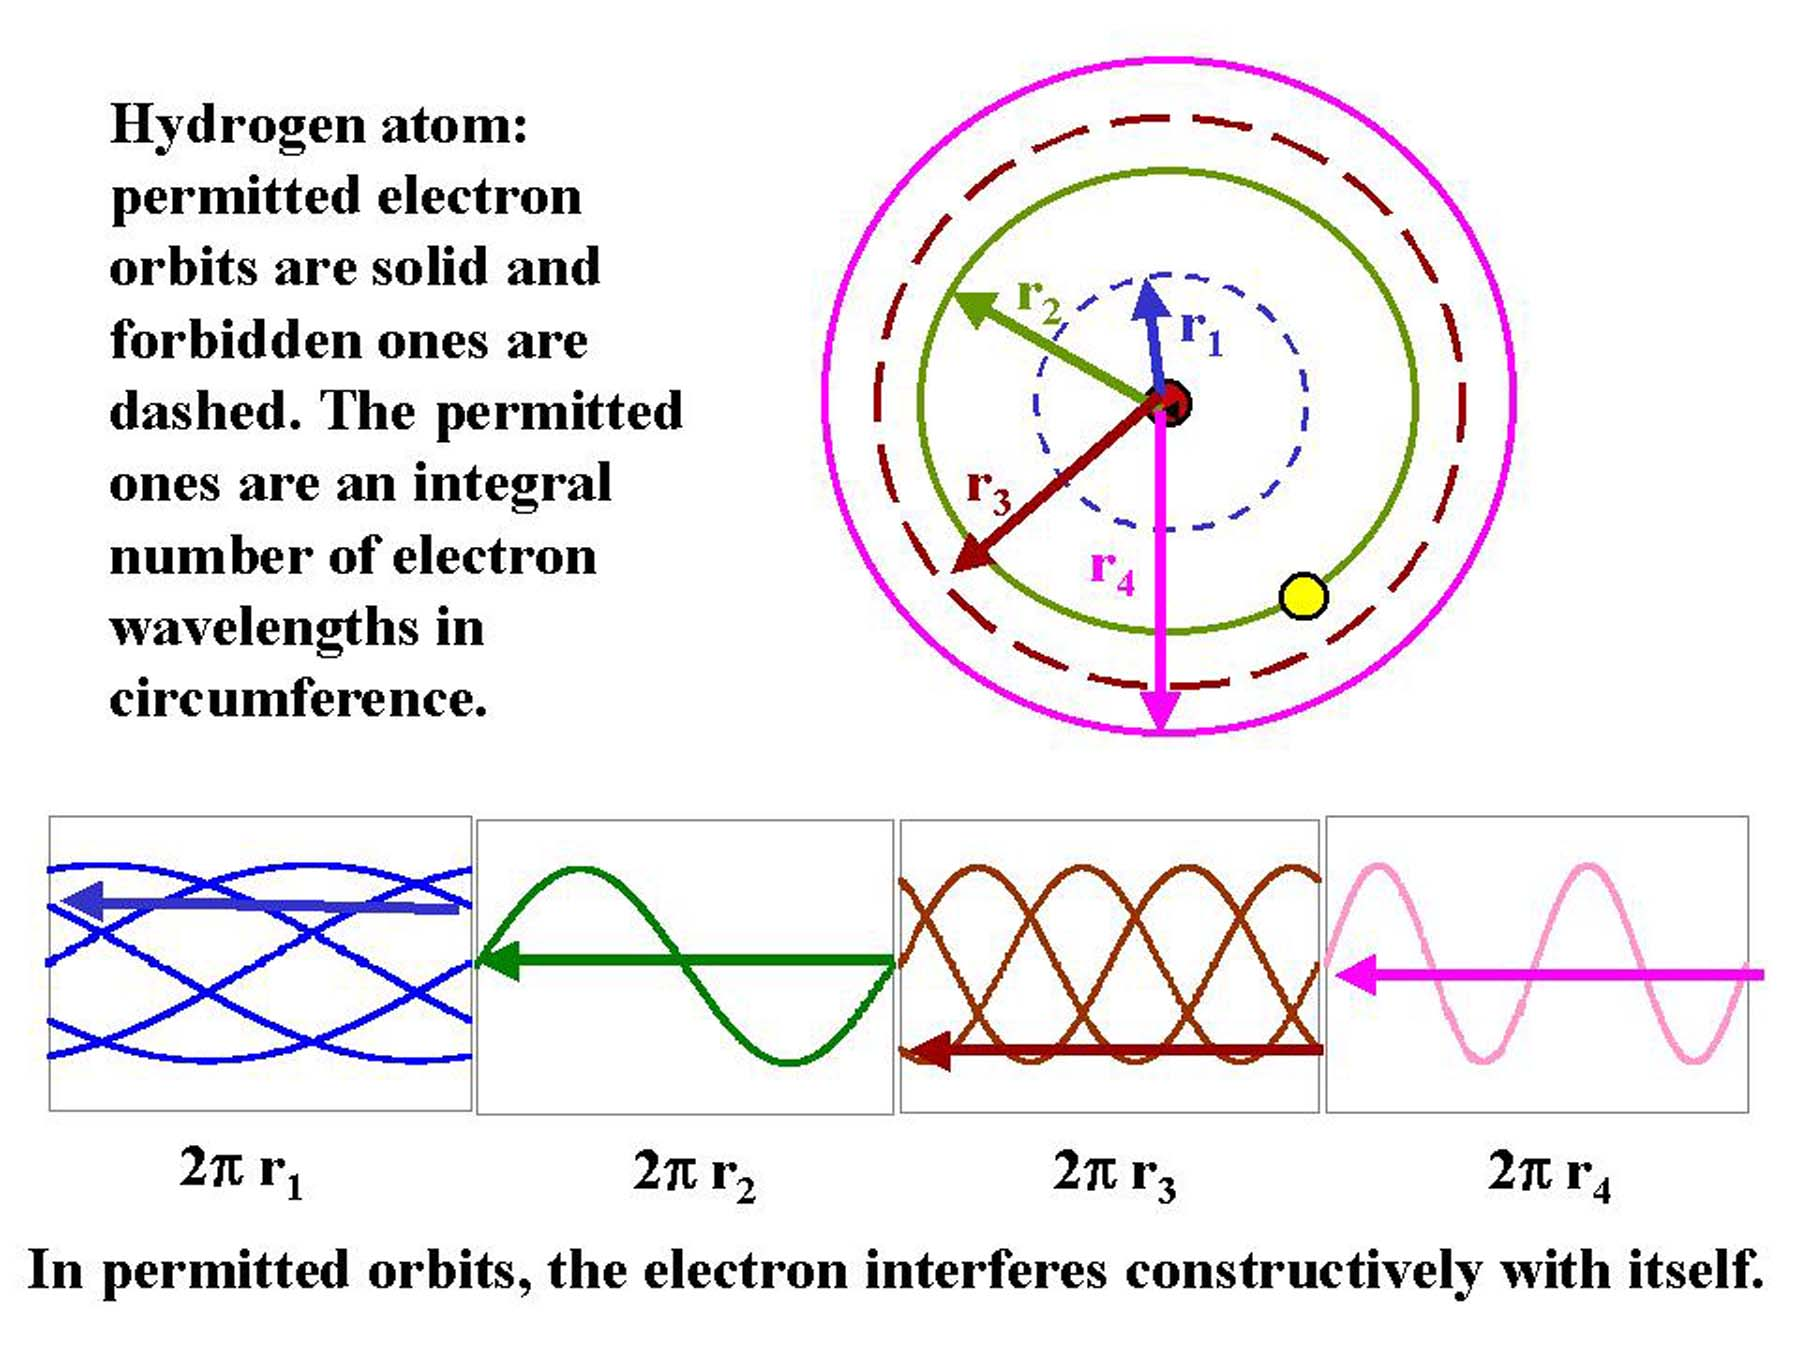 FHSST Physics/Electrostatics/Electric Fields - Wikibooks, open books...